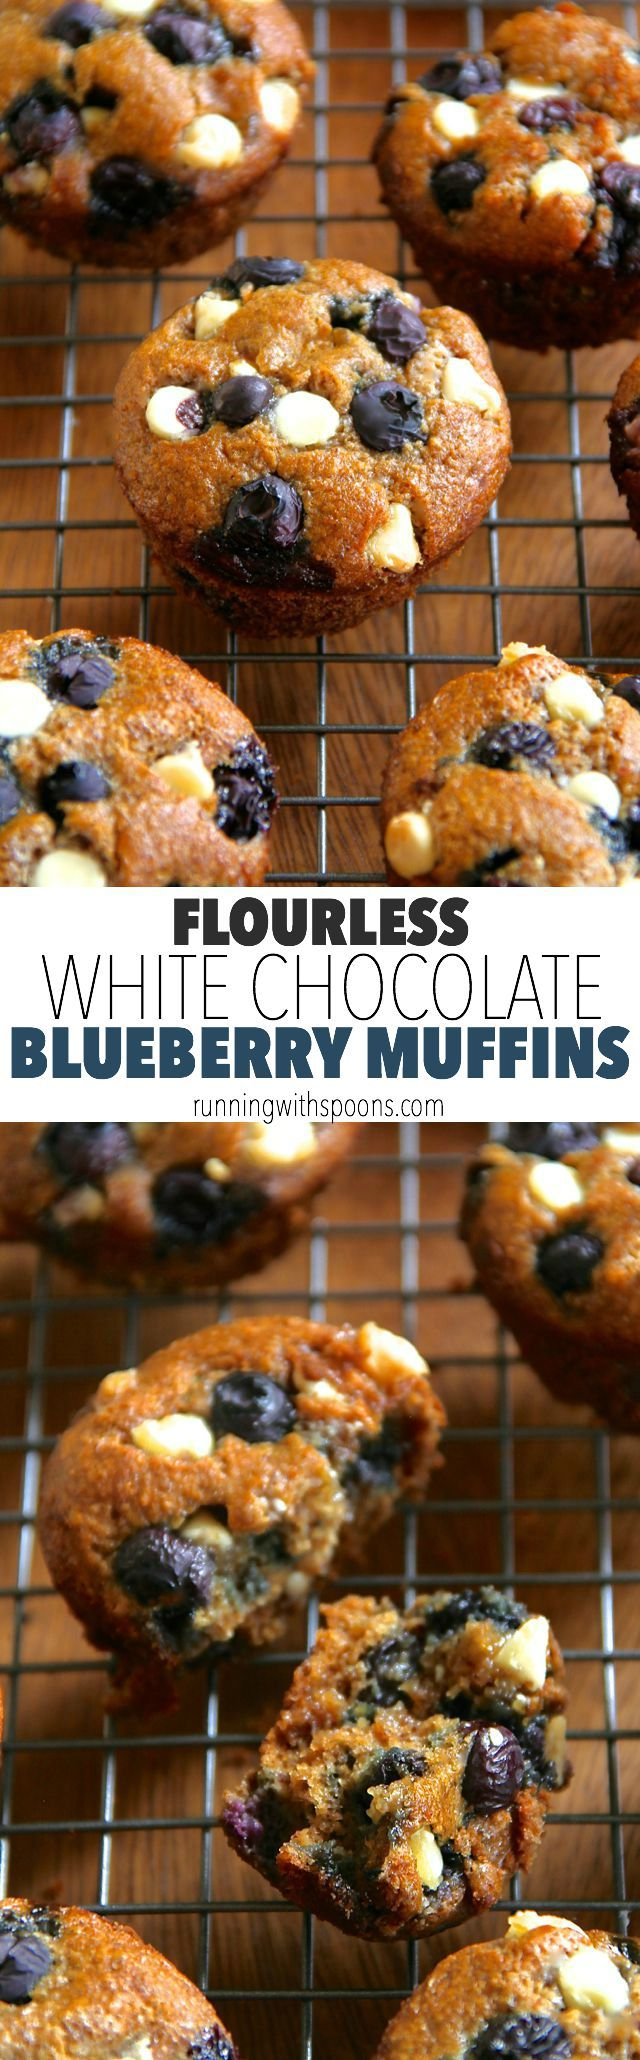 Flourless White Chocolate Blueberry Muffins -- gluten-free, oil-free, dairy-free, refined sugar-free, but so soft and delicious that you'd never be able to tell! || runningwithspoons.com